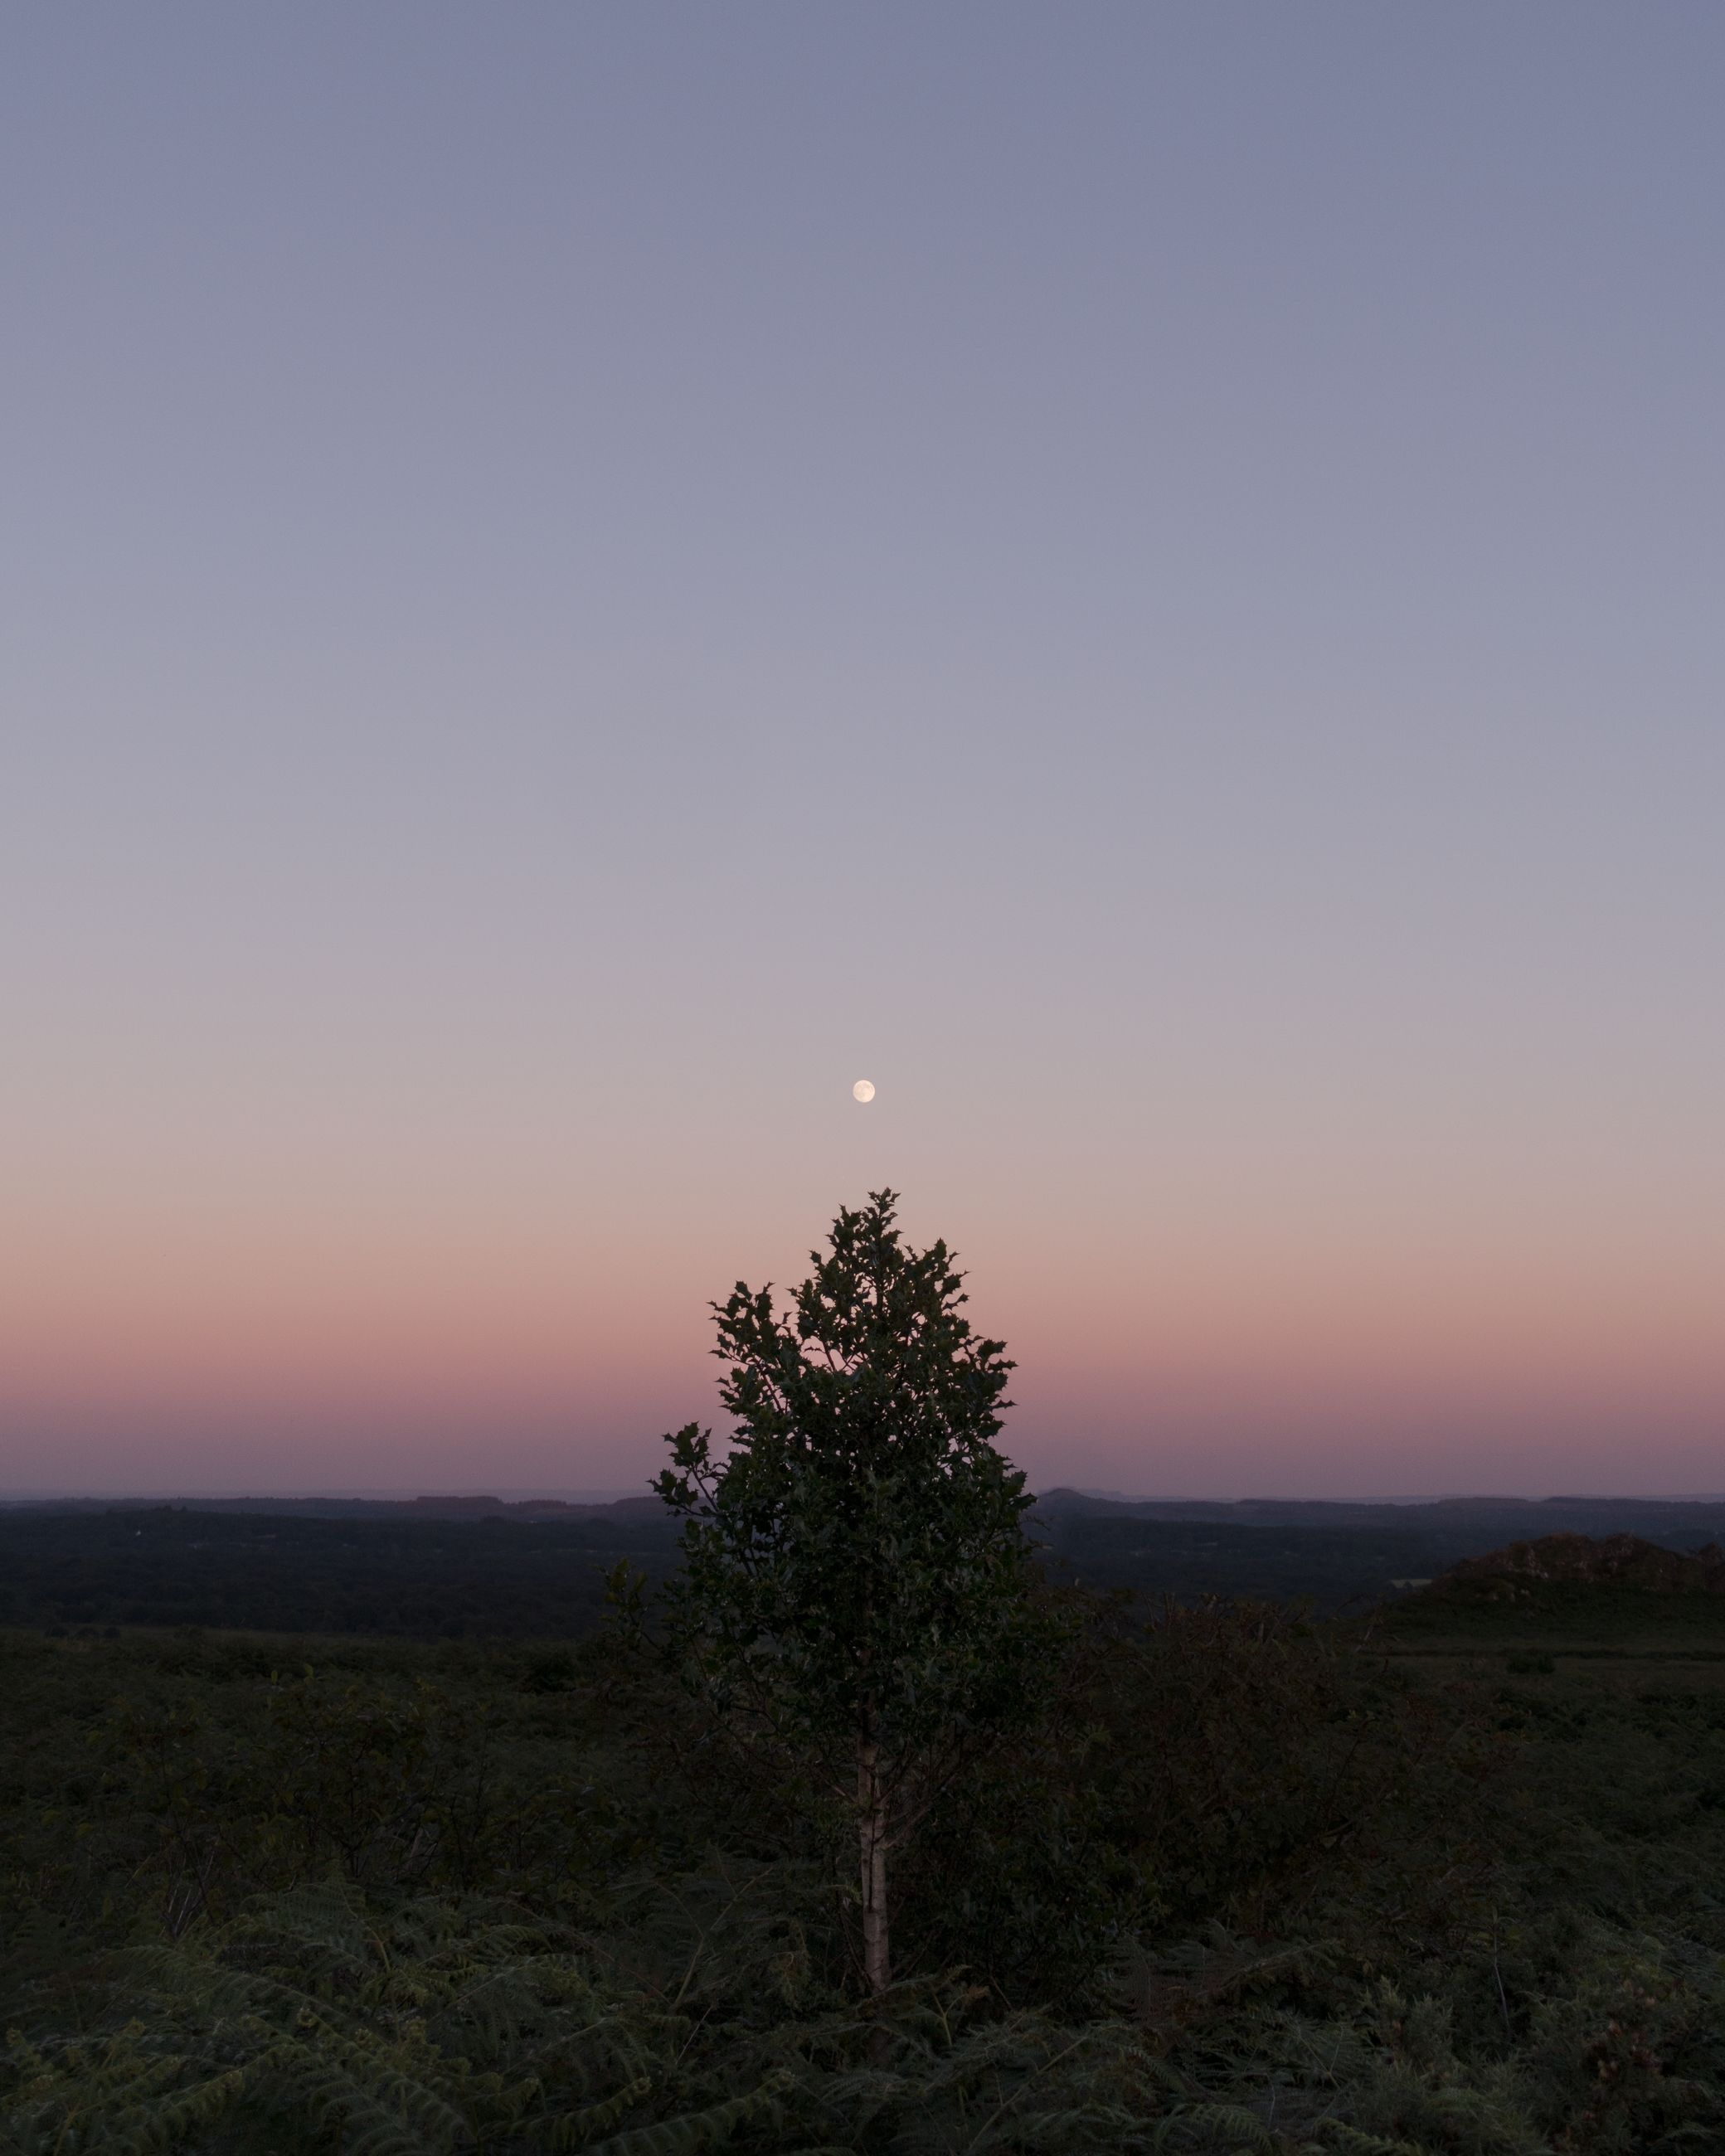 sky, sunset, tranquility, beauty in nature, scenics - nature, tranquil scene, plant, copy space, tree, nature, non-urban scene, no people, idyllic, environment, land, landscape, clear sky, moon, growth, field, outdoors